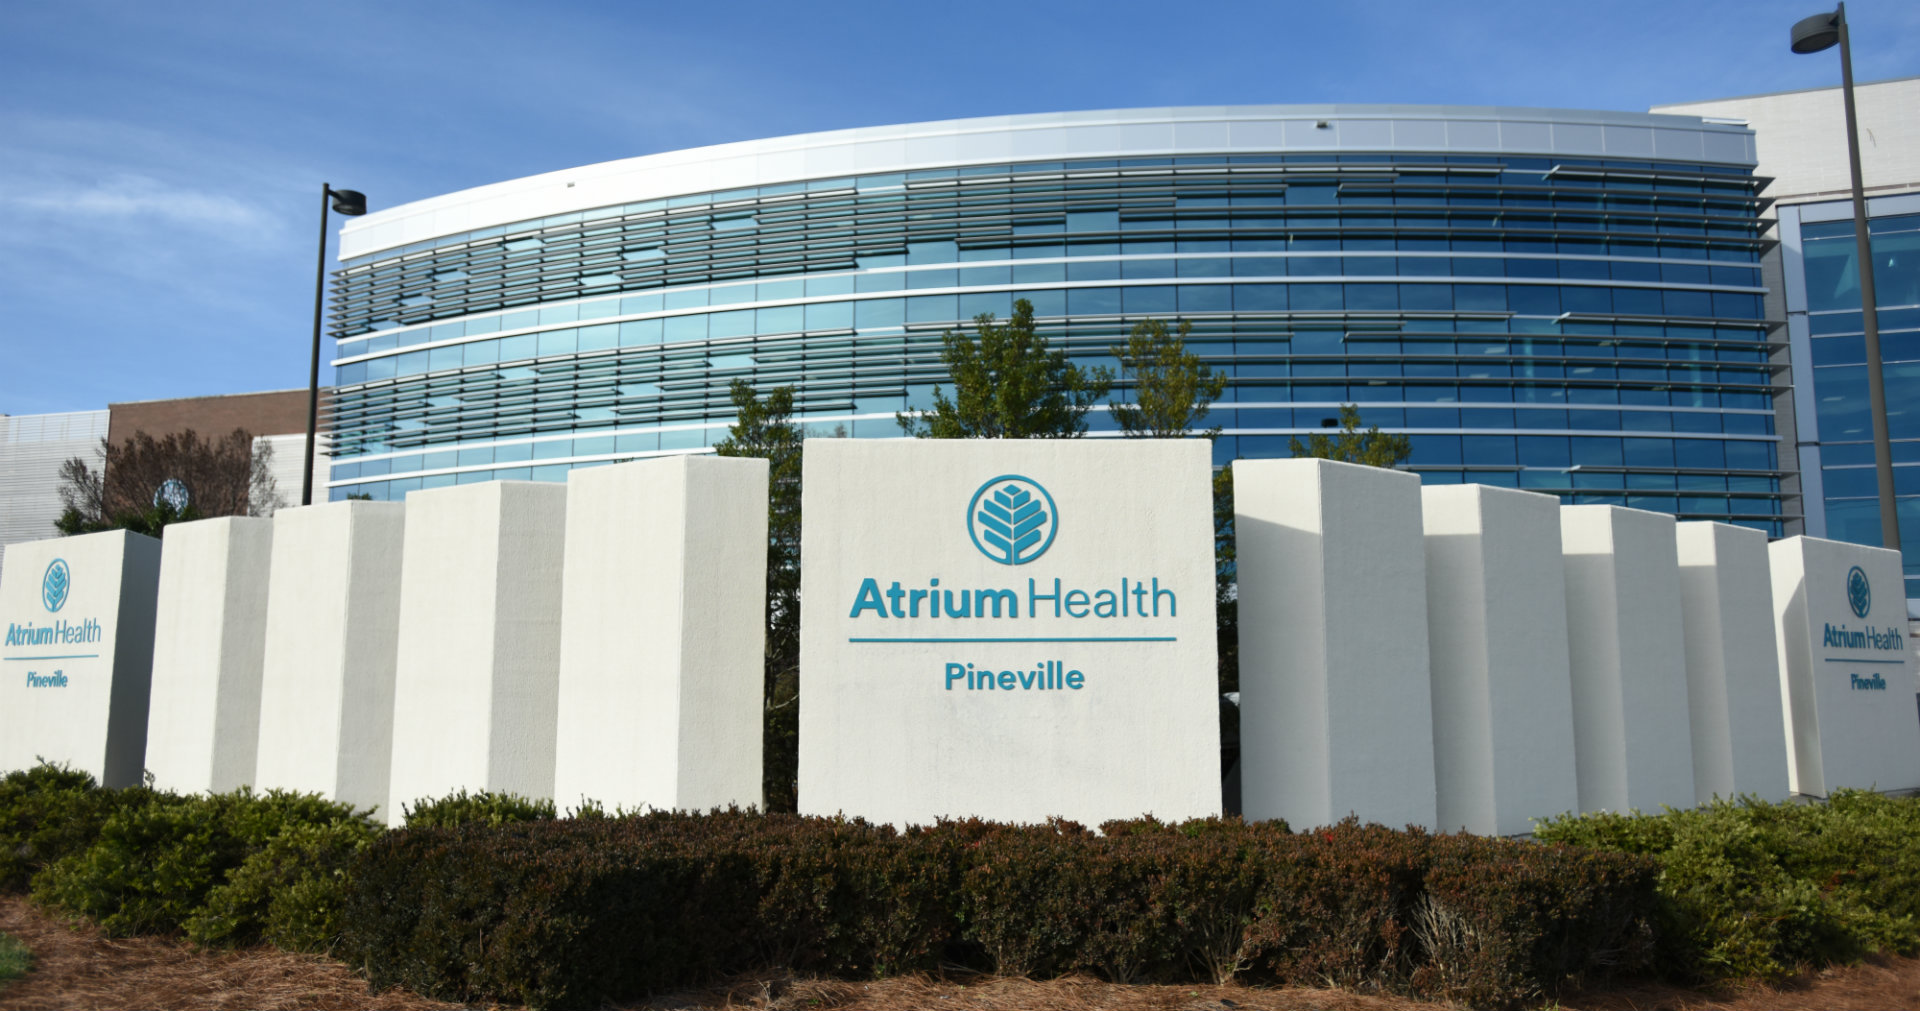 Atrium Health Pineville became the hospital's official name on January 1, 2019.